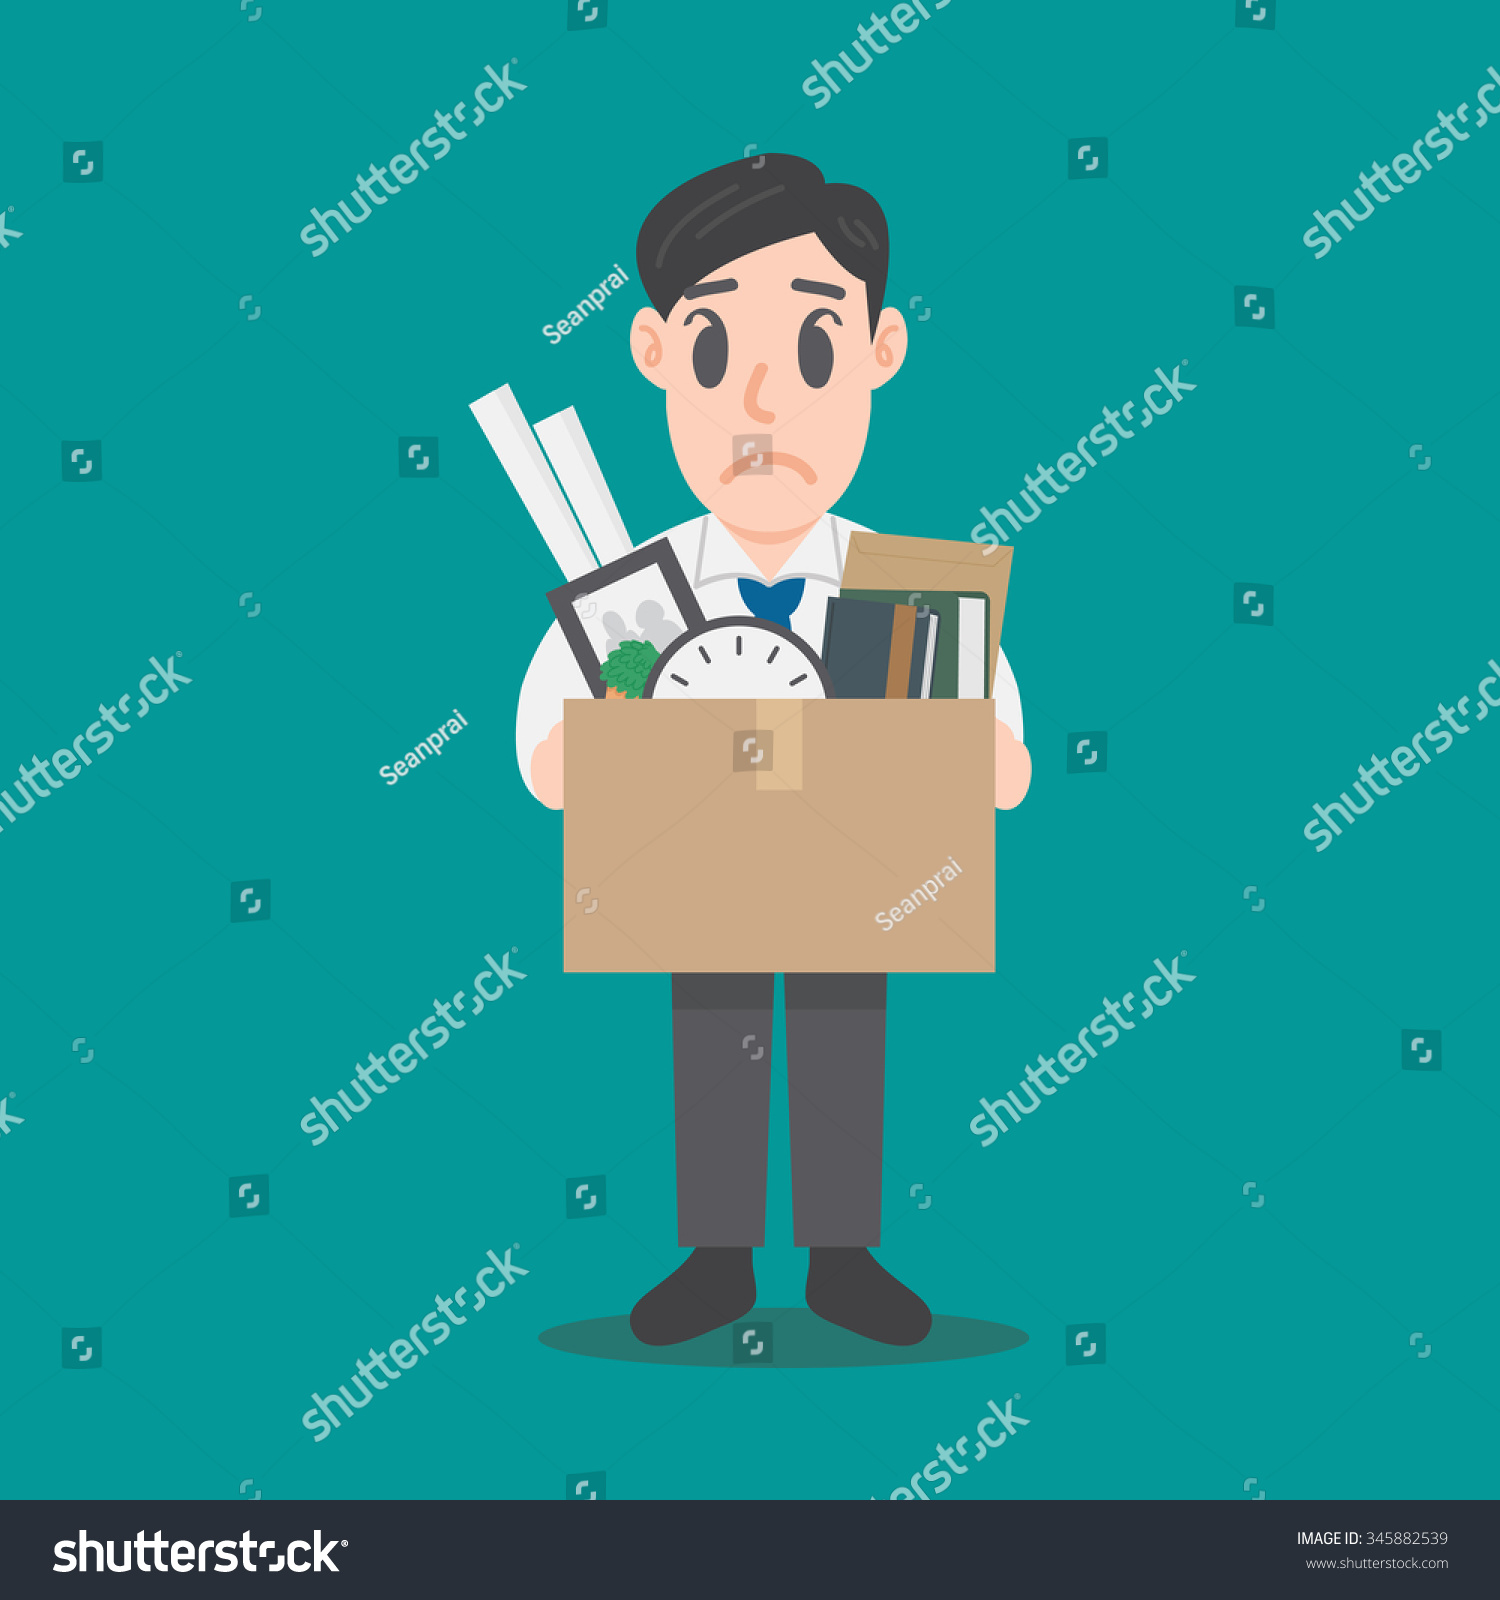 businessman leaving job fired illustration vector  businessman leaving job fired illustration vector